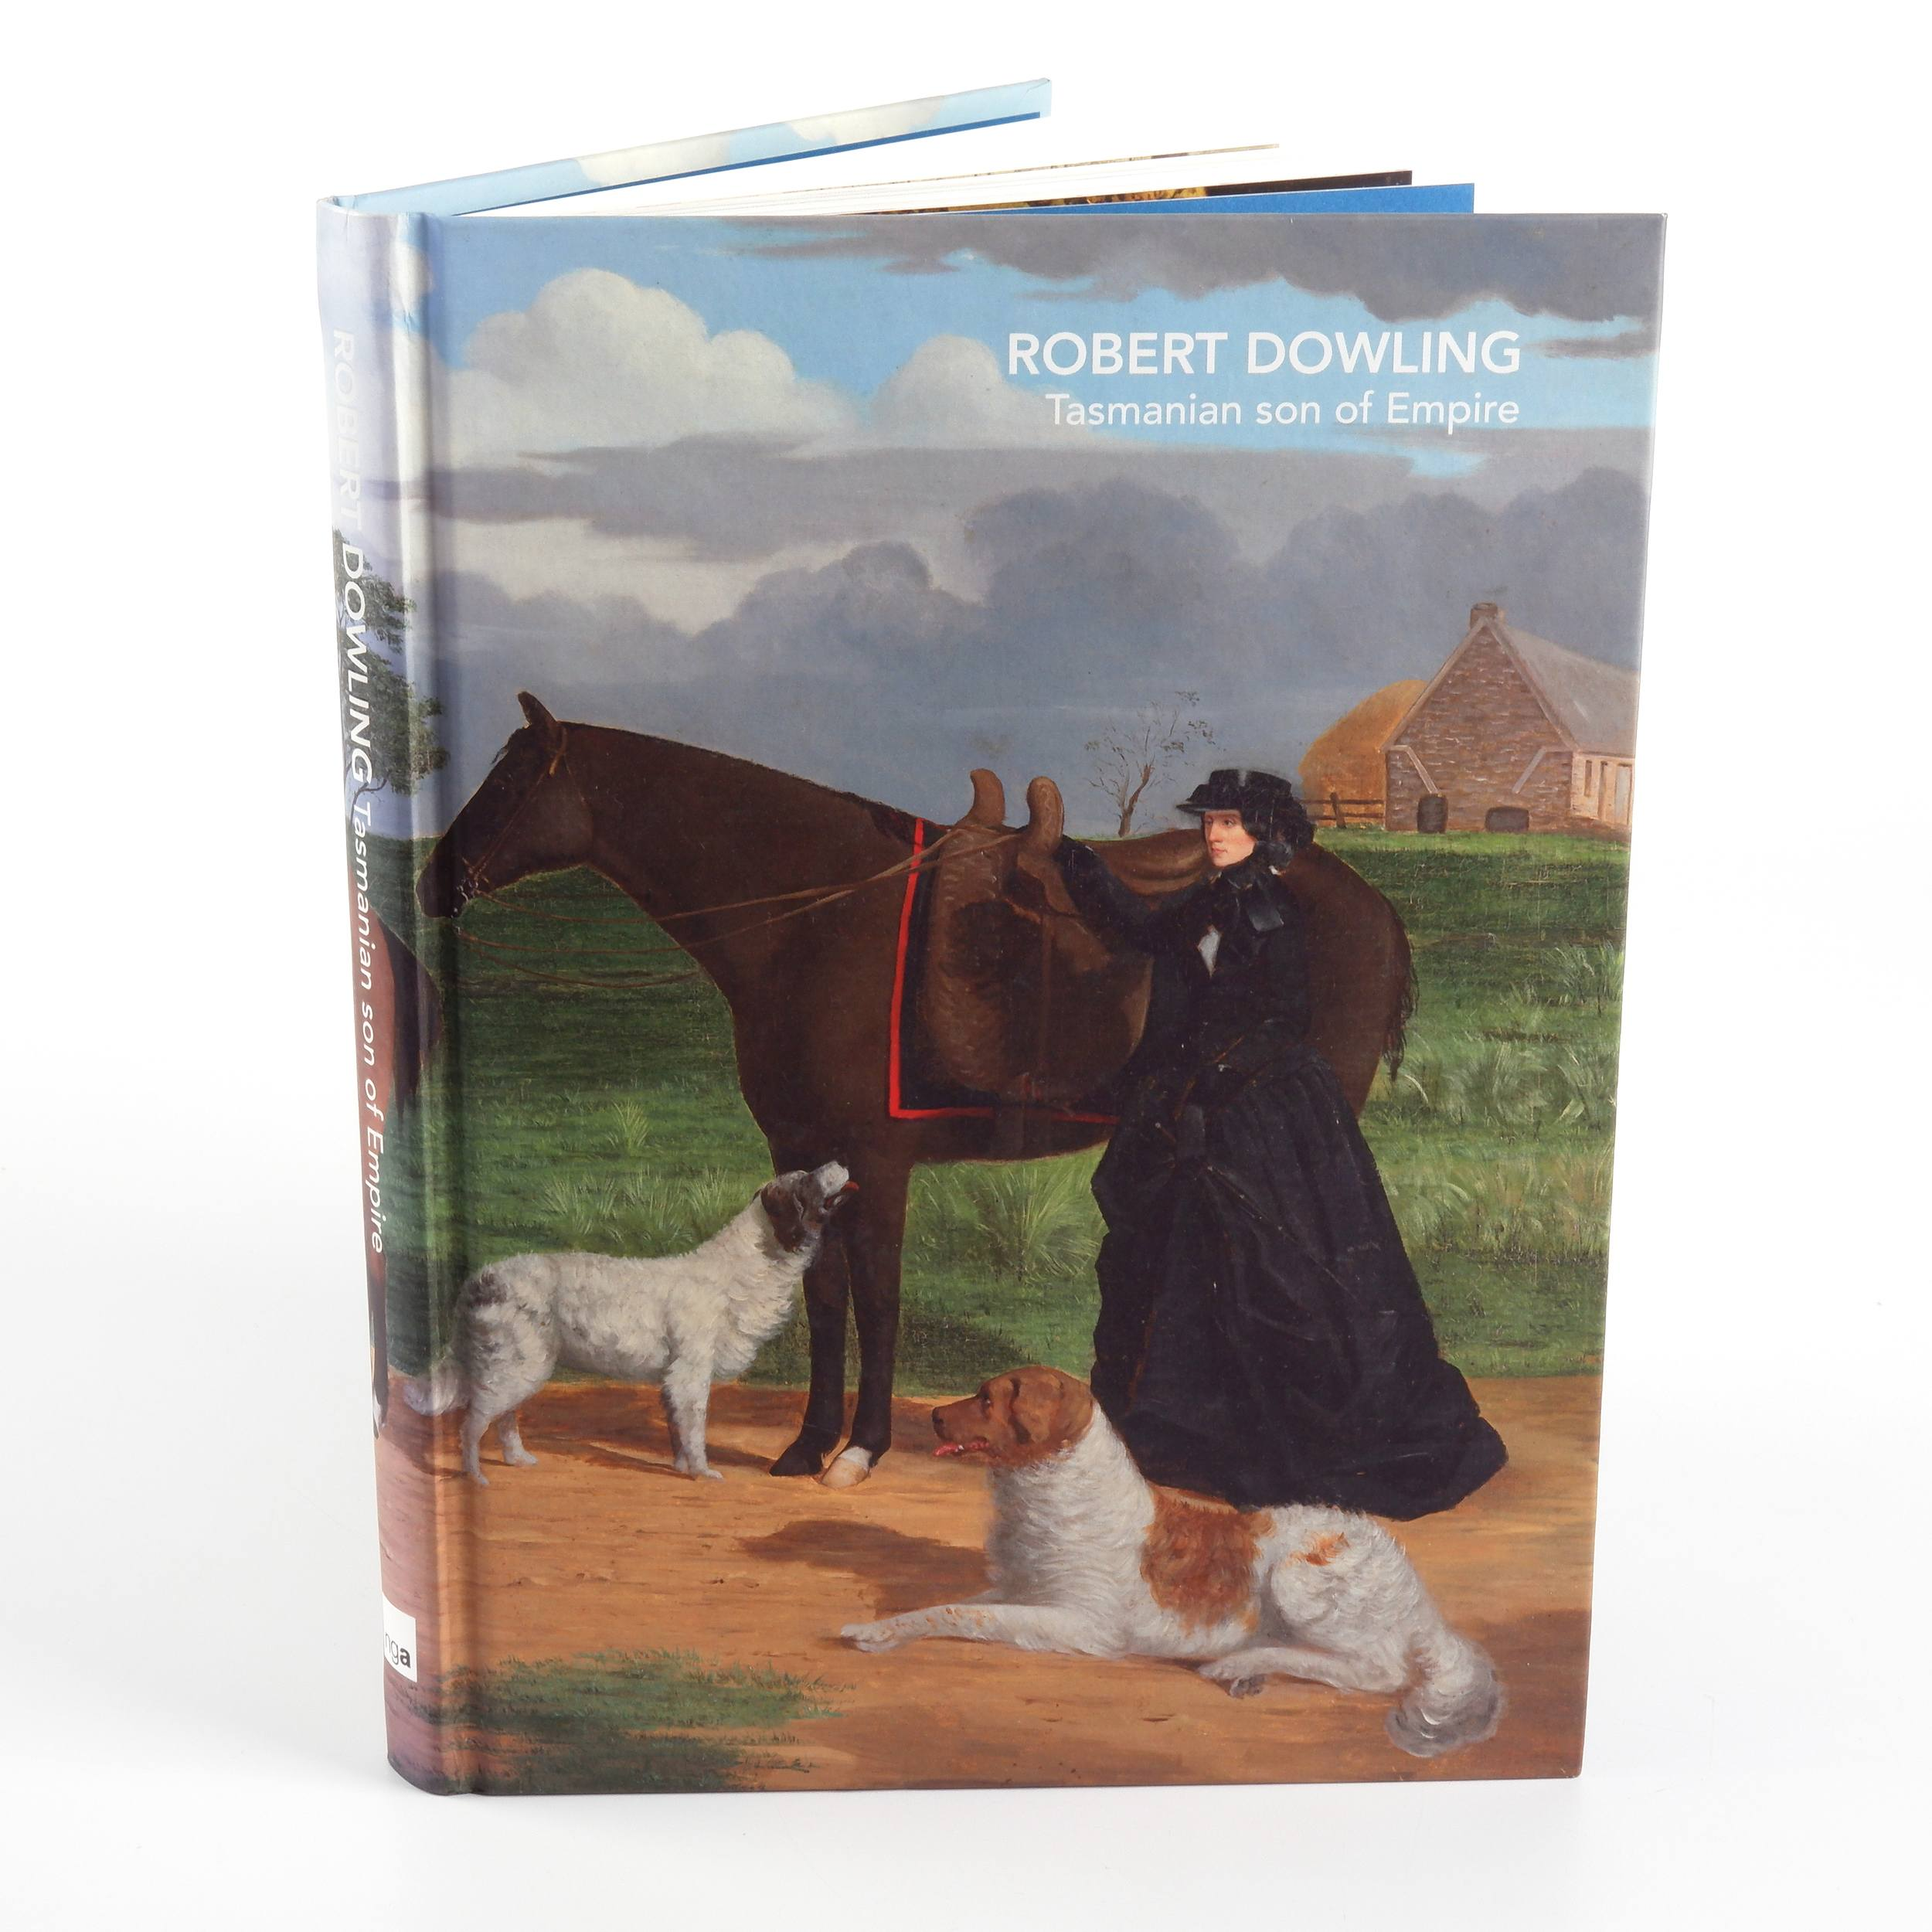 'Jones, J., Robert Dowling: Tasmanian Son of Empire,National Gallery of Australia, Canberra, 2010. Hardcover. 192 pages'